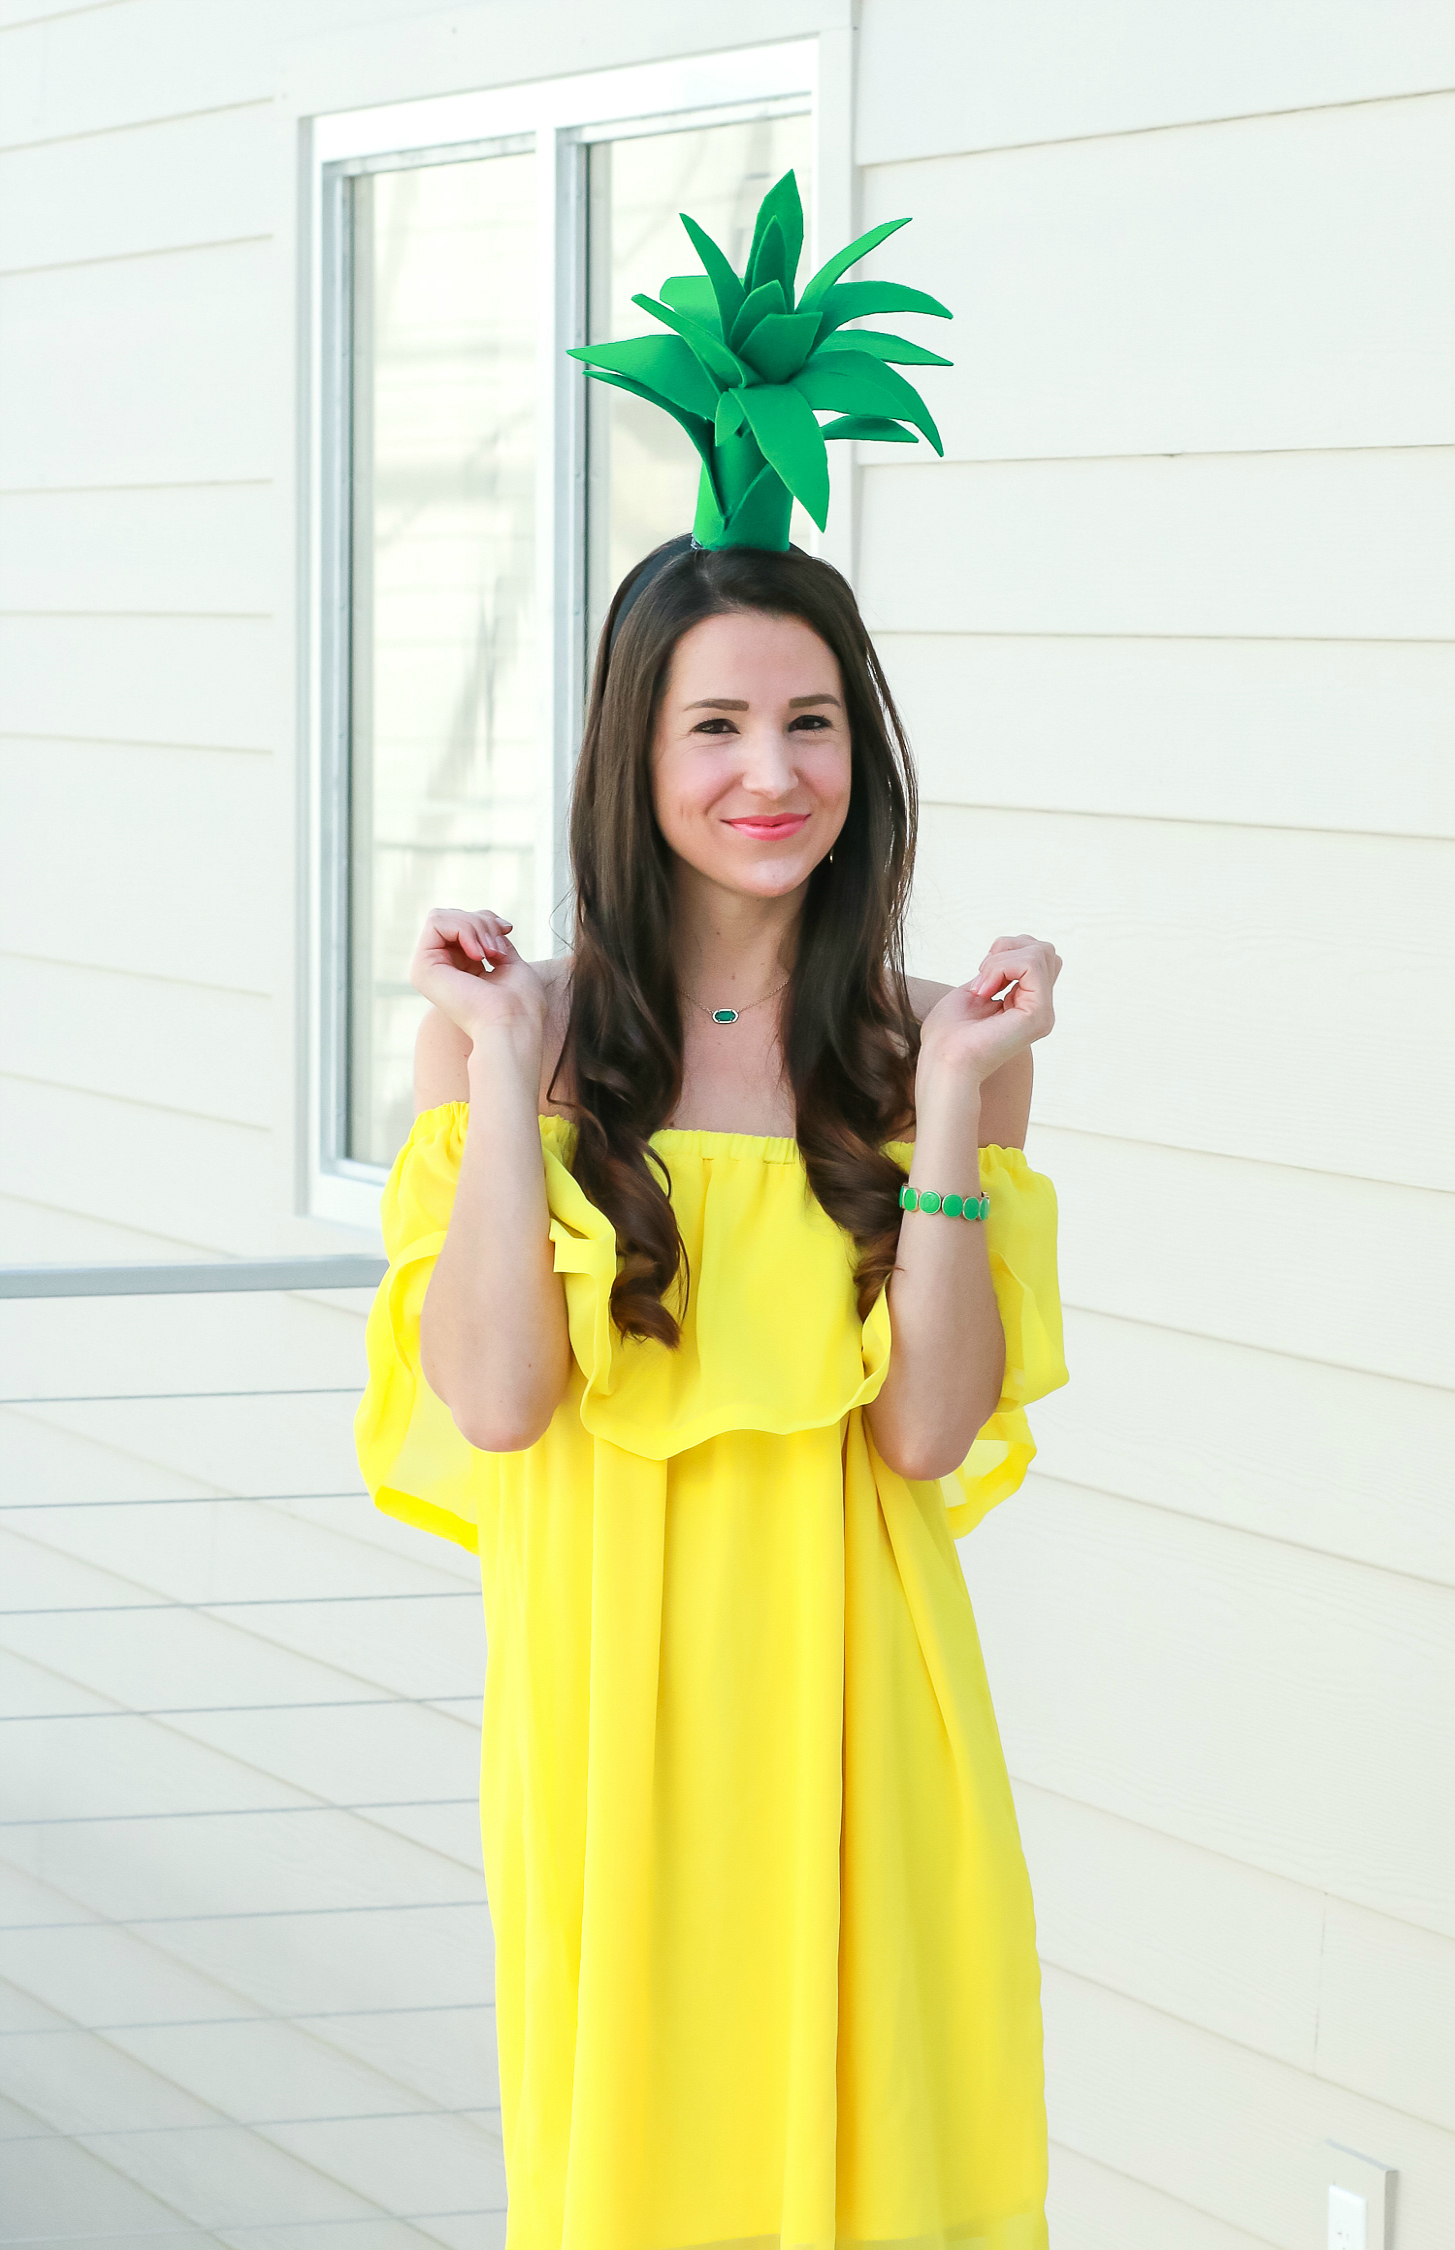 Super simple $3 pineapple Halloween costume idea | Easy DIY Halloween costume | DIY Pineapple Topper | DIY Pineapple Costume by fashion blogger Stephanie Ziajka from Diary of a Debutante